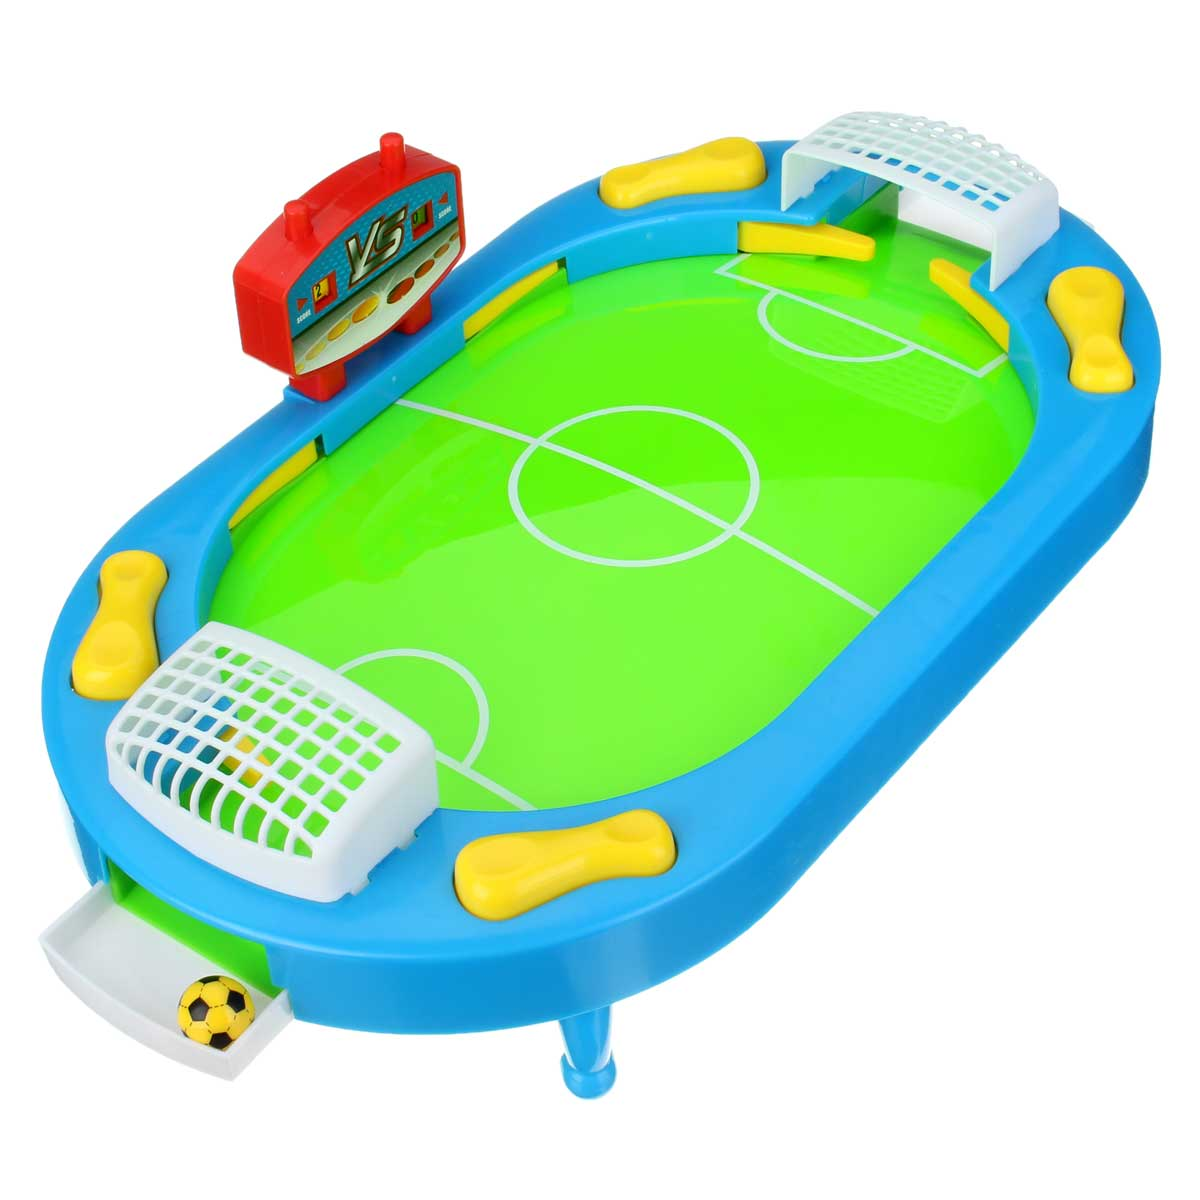 Double Interactive Football Game Tabletop Shoot Children Mini Version Table Soccer Toys Desktop Football Kids Toy 37.5x21x15cm(China (Mainland))